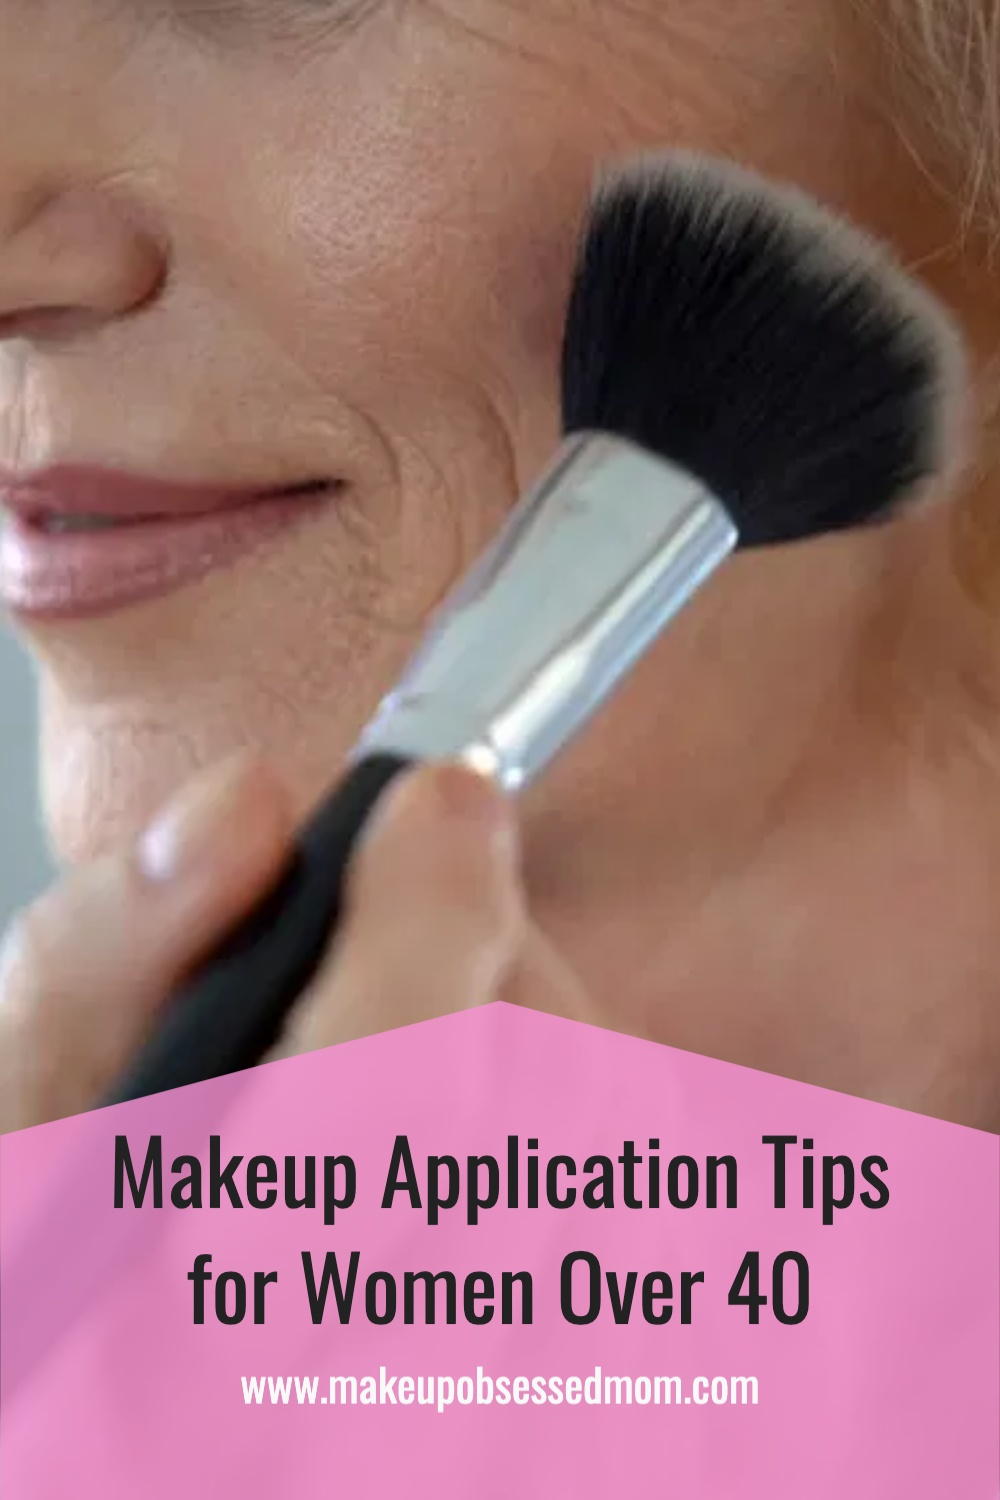 Makeup Application for Women Over 40